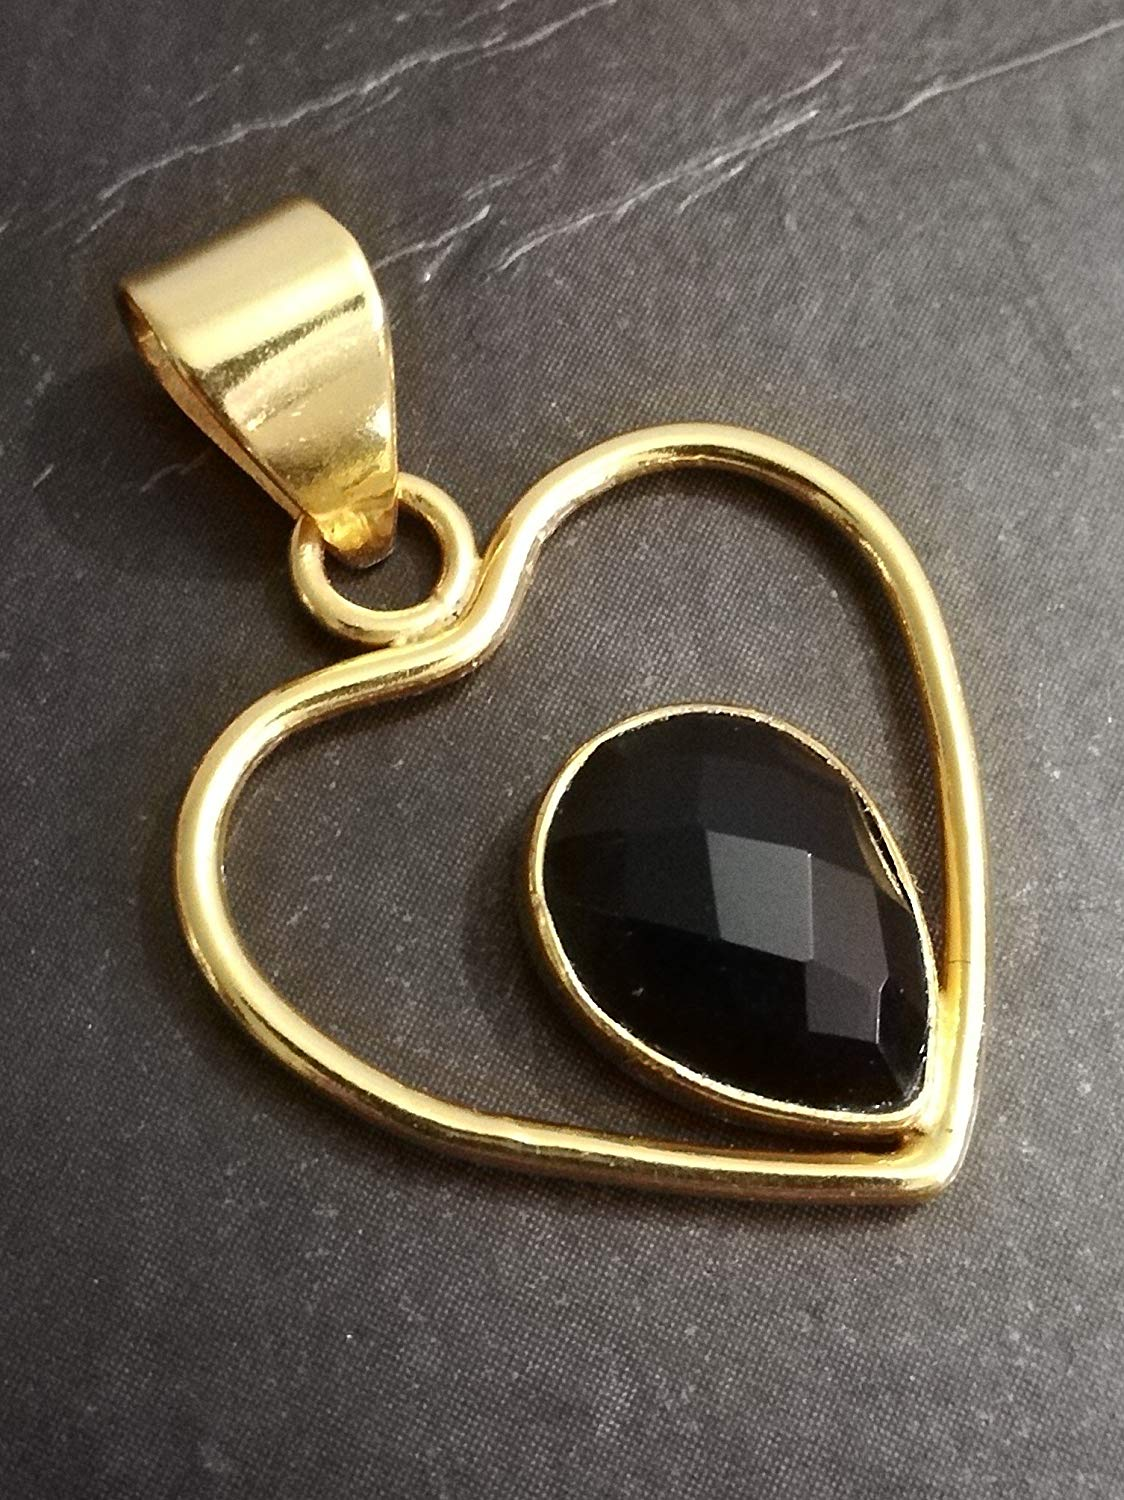 Faceted Black Onyx Pendant, 925 Sterling Silver, Gold Plated Silver Pendant, Heart Shape Pendant, Teardrop Pendant, Minimalist Stone Pendant, 7th Anniversary Pendant, August Birthstone, Gift Daughter